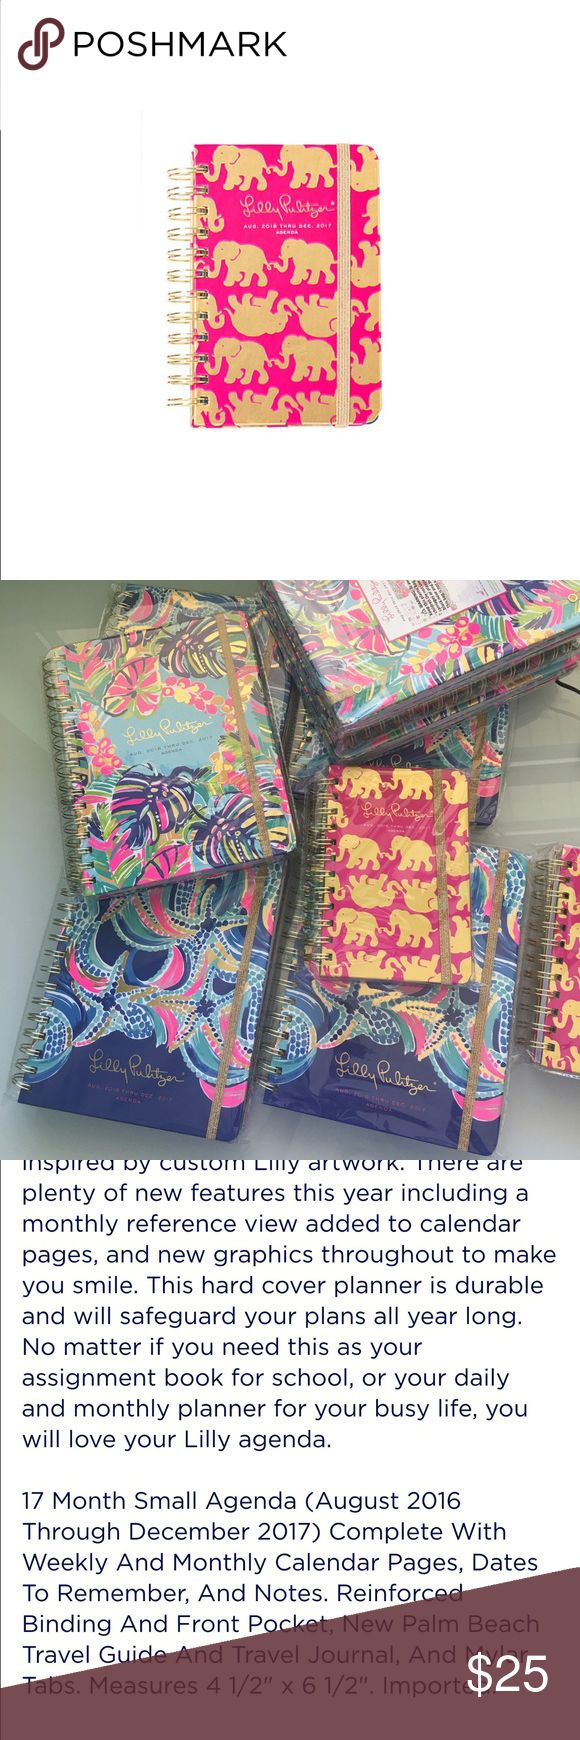 3 left! NWT Retail - Lilly Pulitzer Small Agenda I am a Lilly Retailer, so I have to make my $20 minimum sale, hence the $25 price. Agendas will be on lpsdesigns .com for $20 plus shipping.  2016-2017 Agenda. No trades. One left in stock. Lilly Pulitzer Accessories